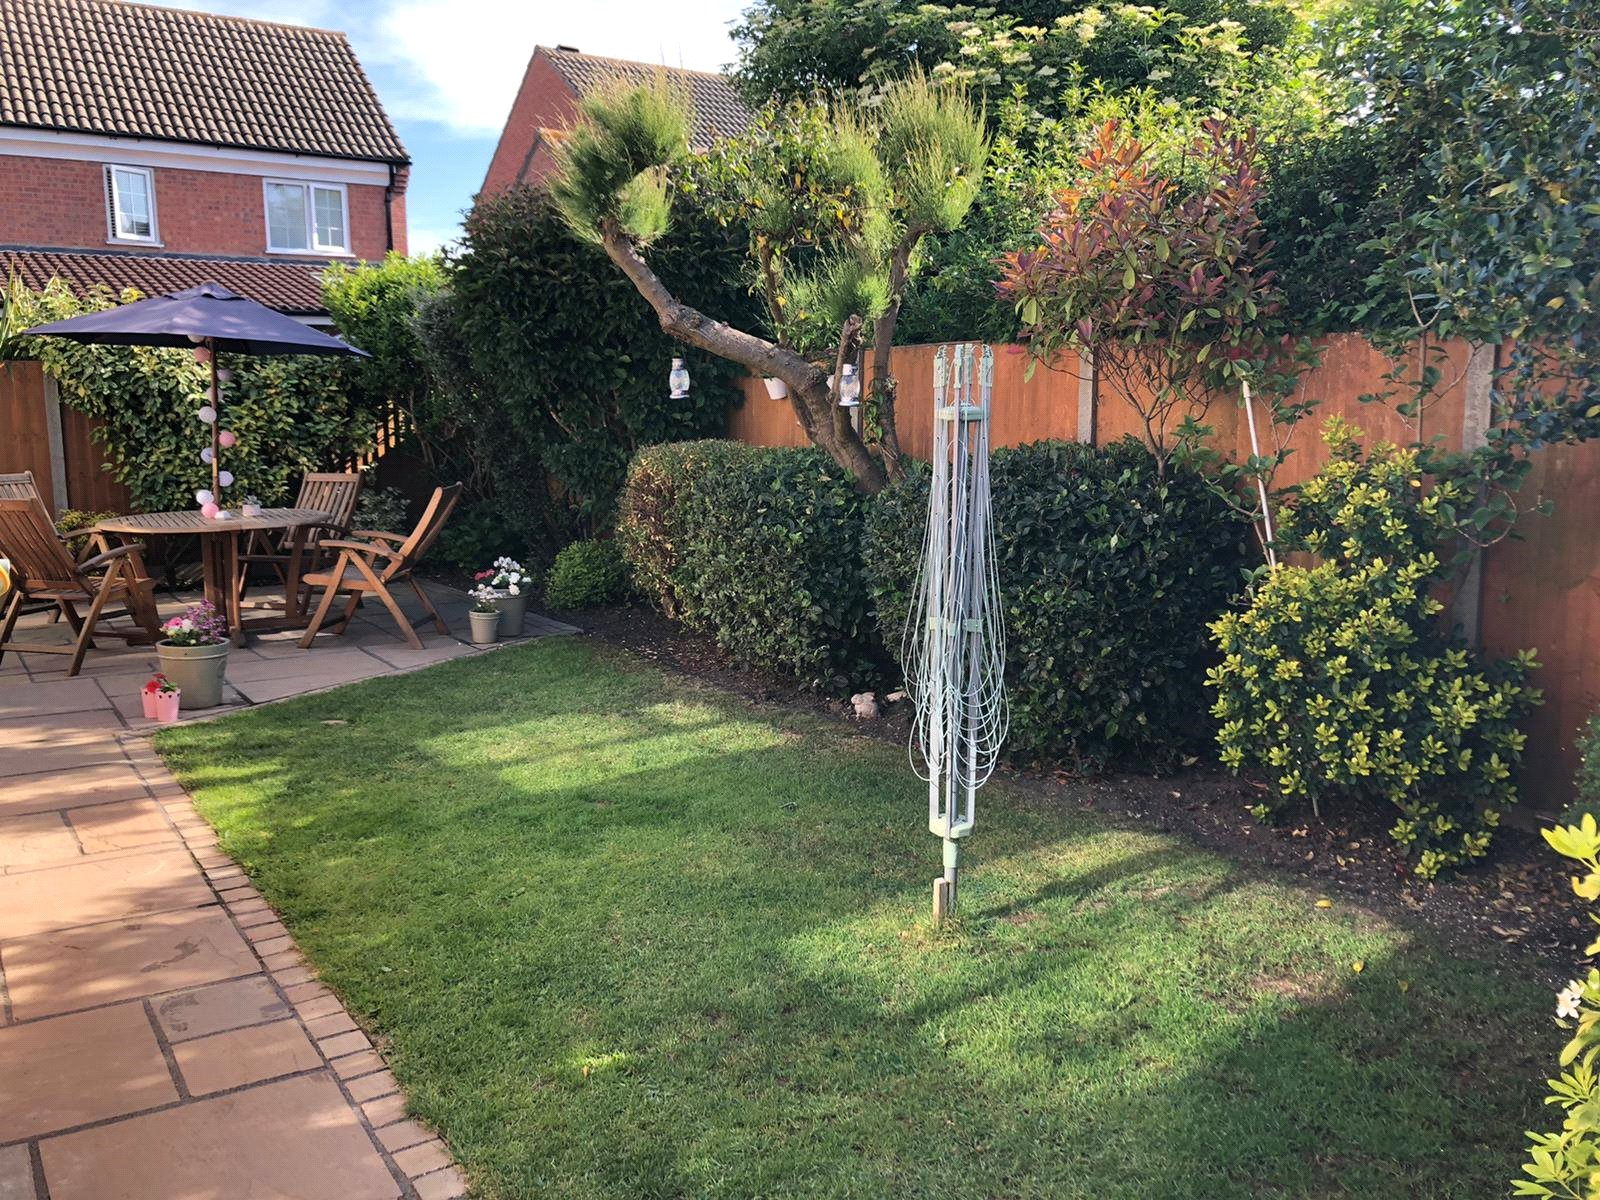 3 bed house for sale in Axis Way, Eaton Socon  - Property Image 12